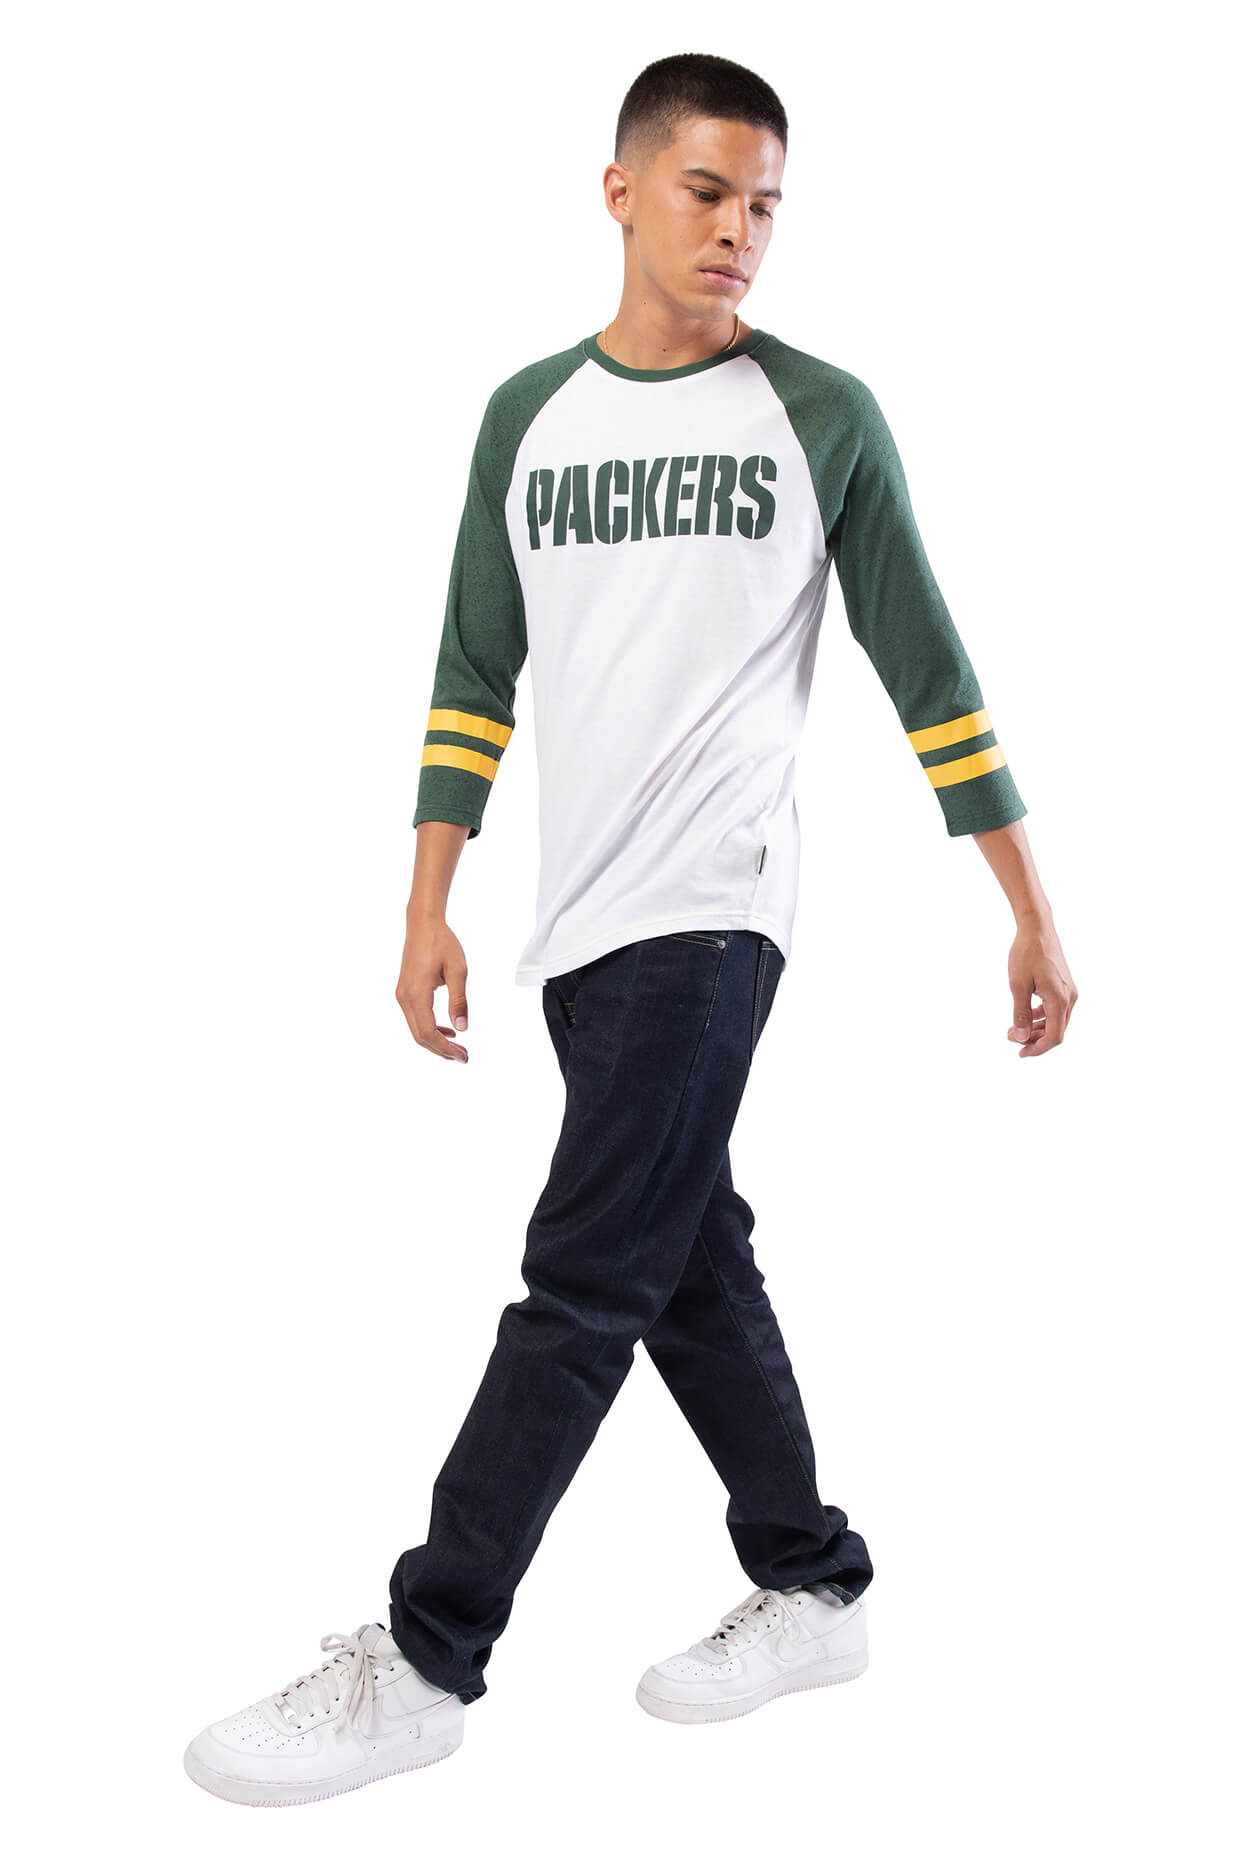 NFL Green Bay Packers Men's Baseball Tee|Green Bay Packers